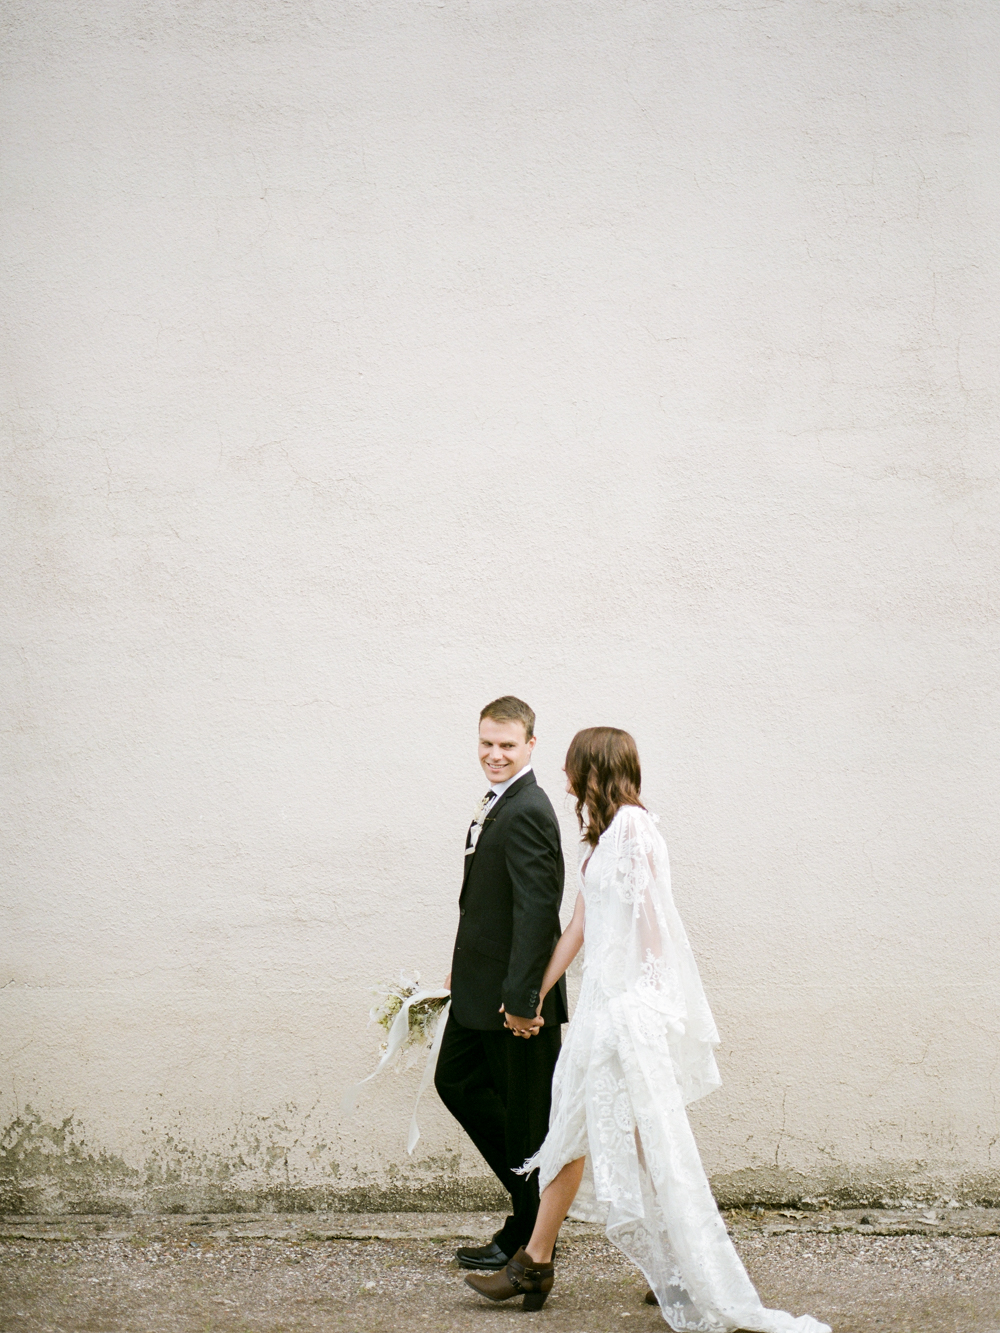 Marfa wedding photographer- destination wedding photographer-christine gosch - film photographer - elopement photographer-11.jpg